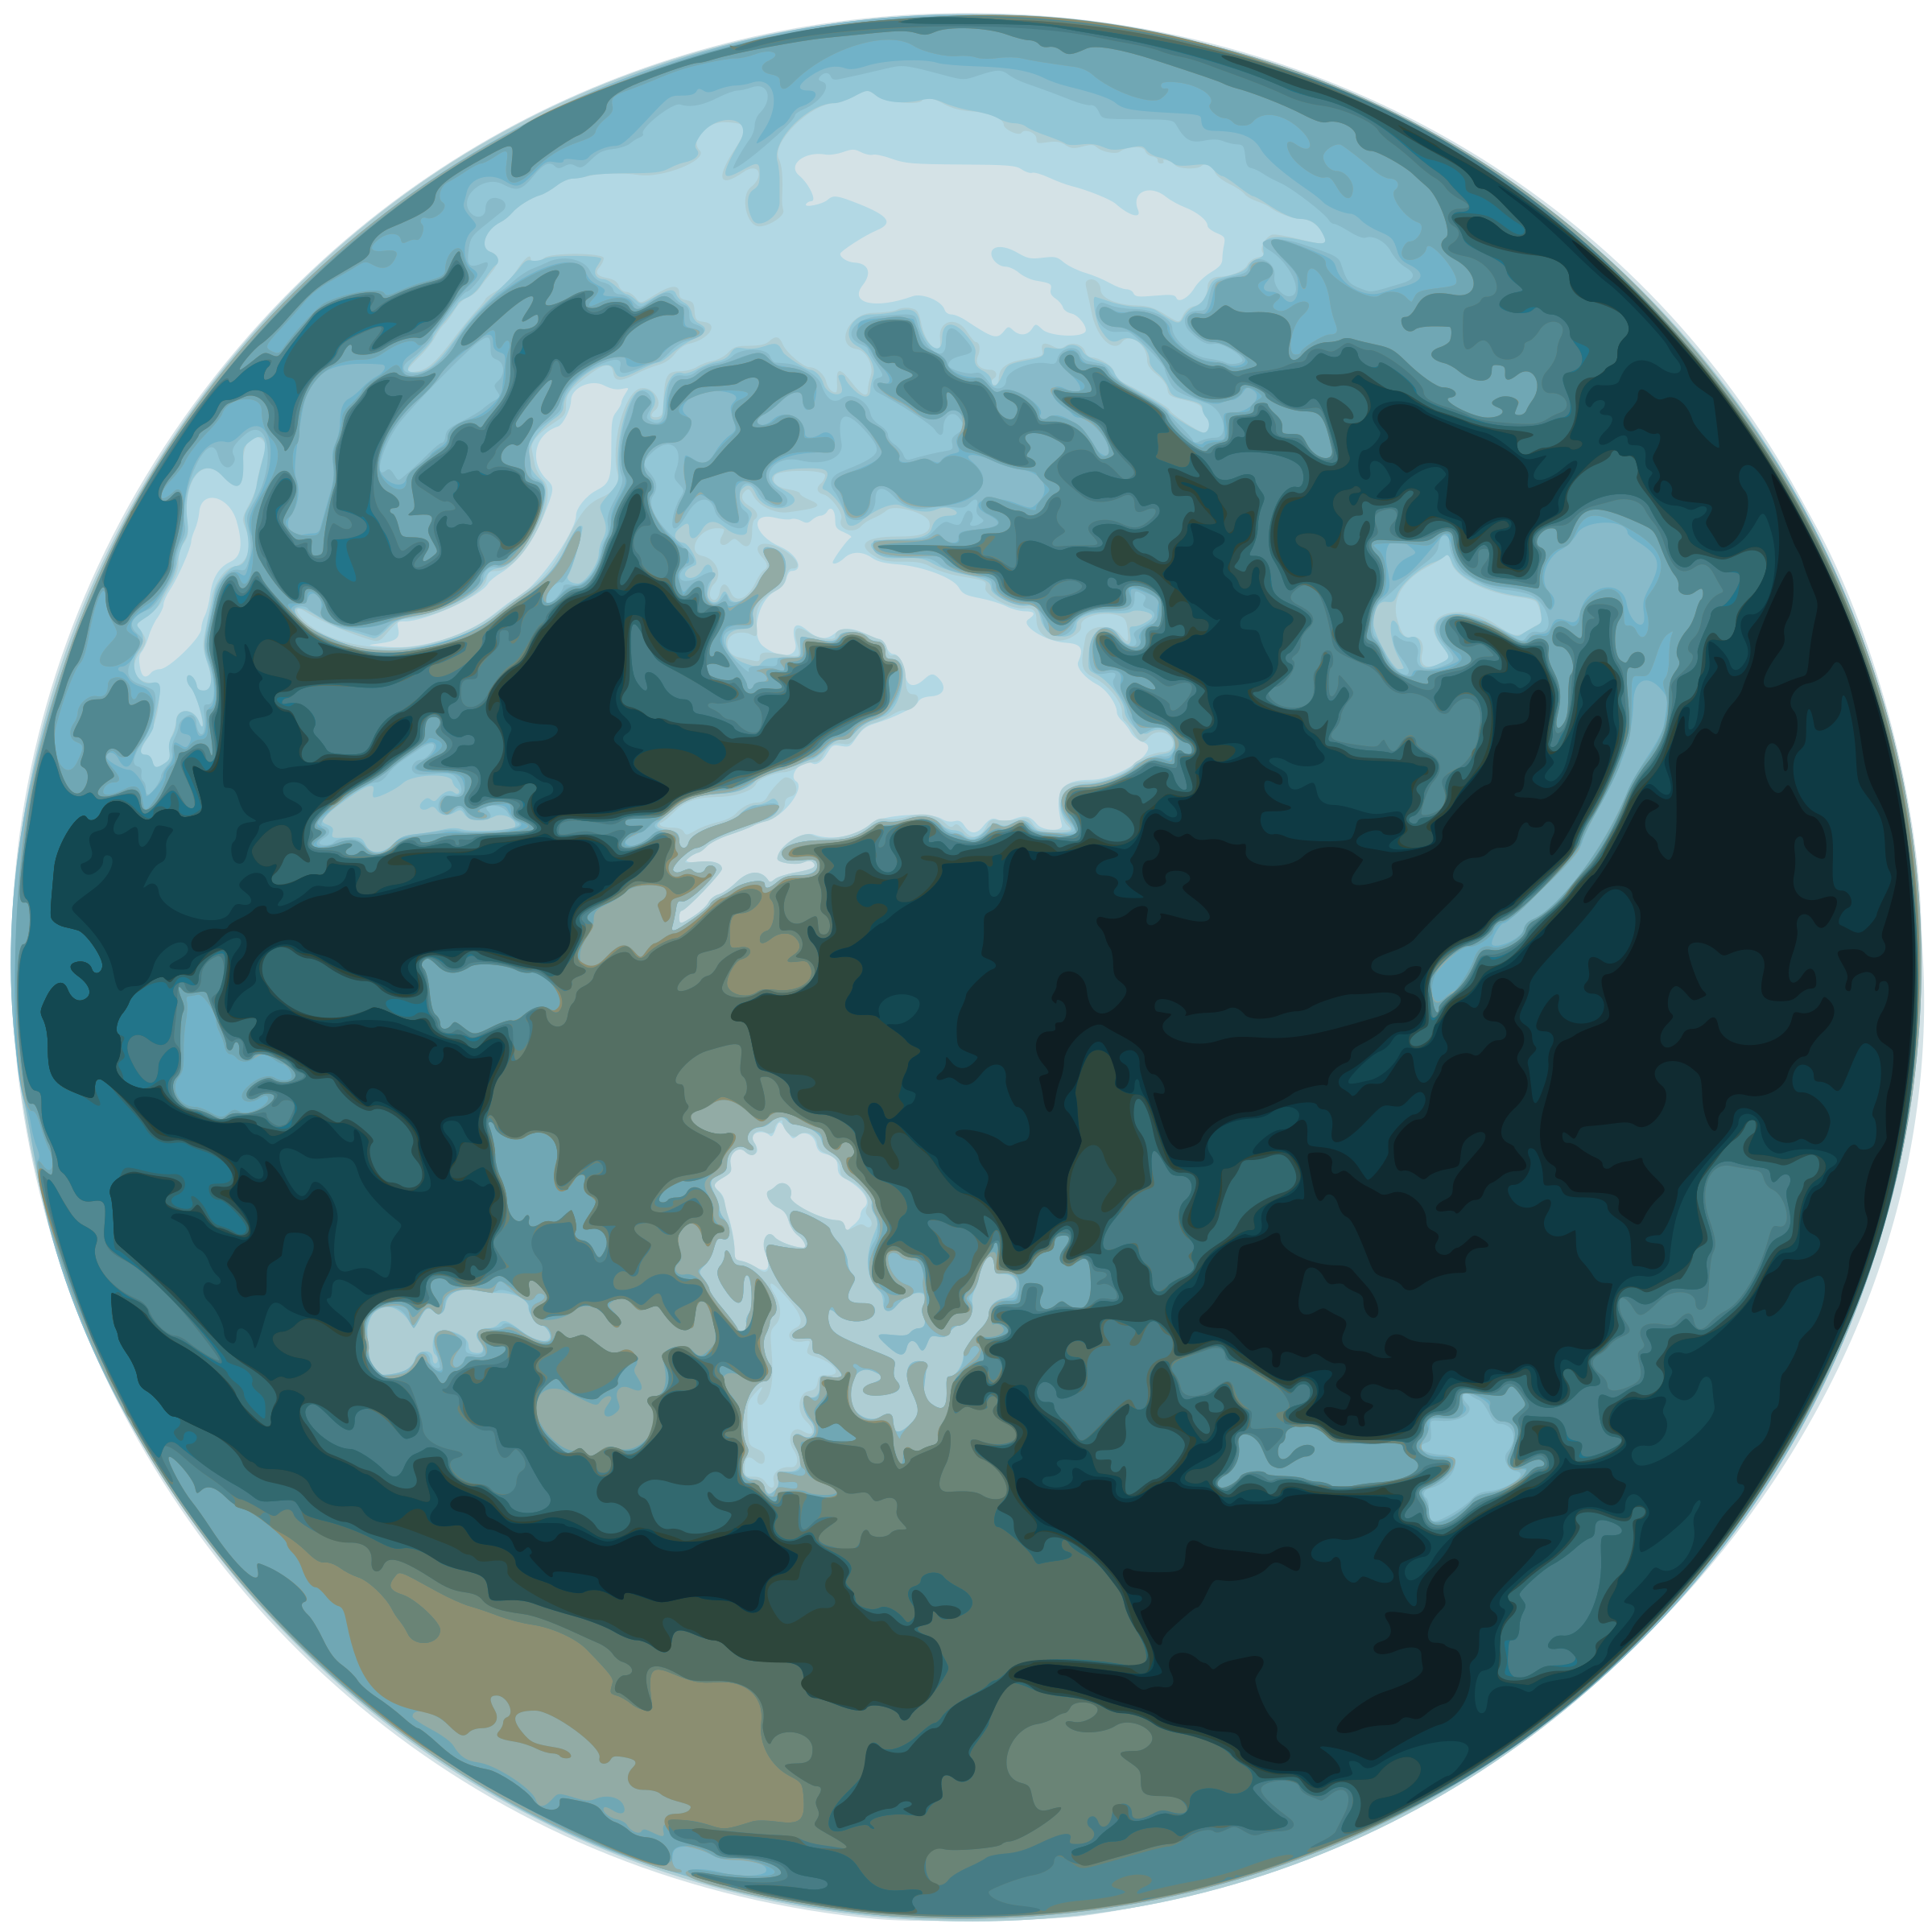 Clipart world atmosphere earth. Big image png